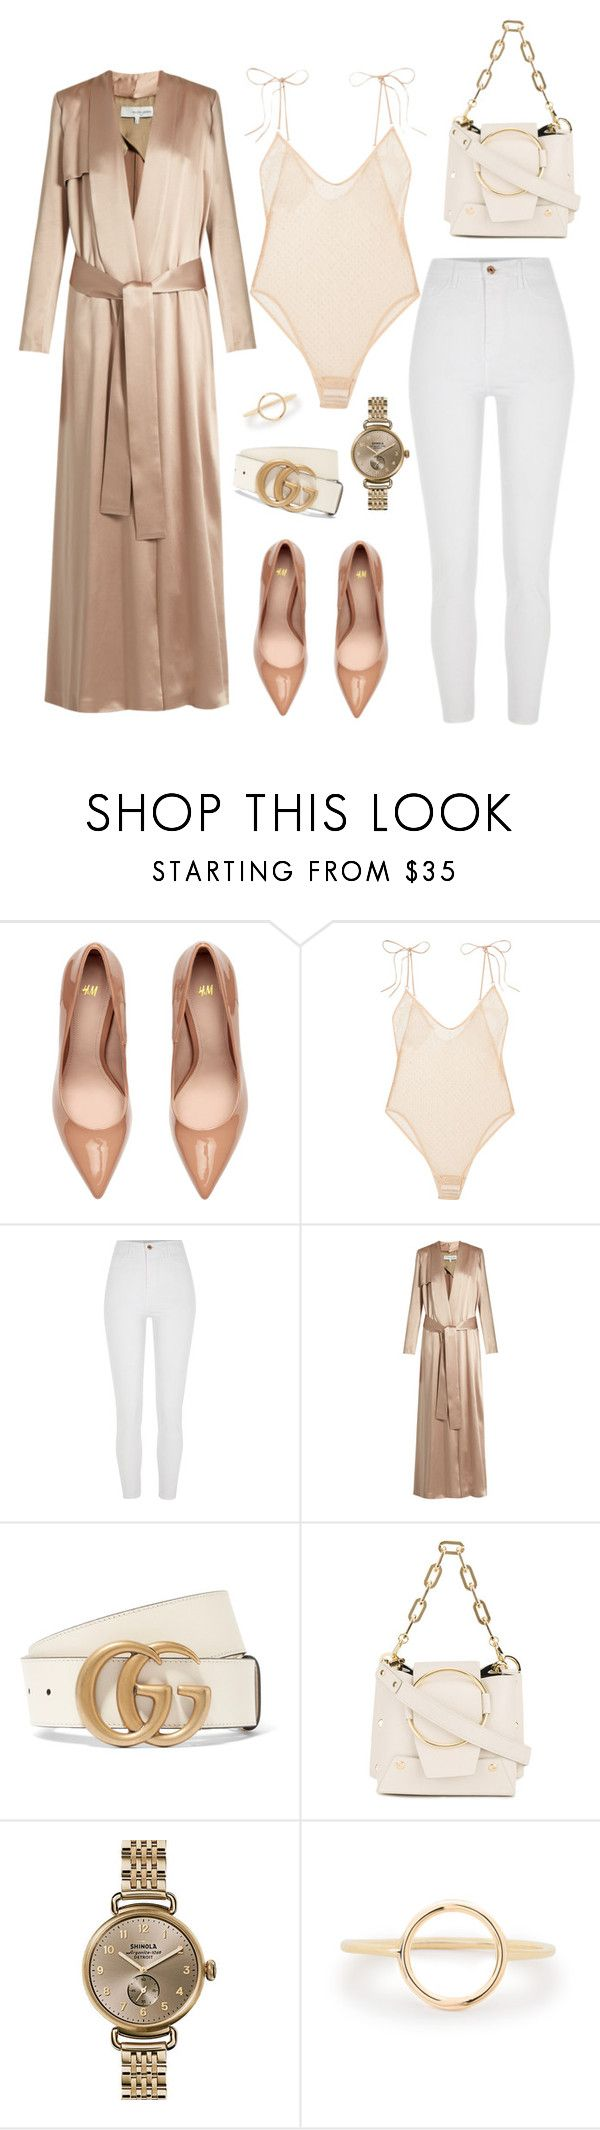 """Untitled #179"" by carolina11297 ❤ liked on Polyvore featuring Le Petit Trou, River Island, Galvan, Gucci, Yuzefi and Shinola"